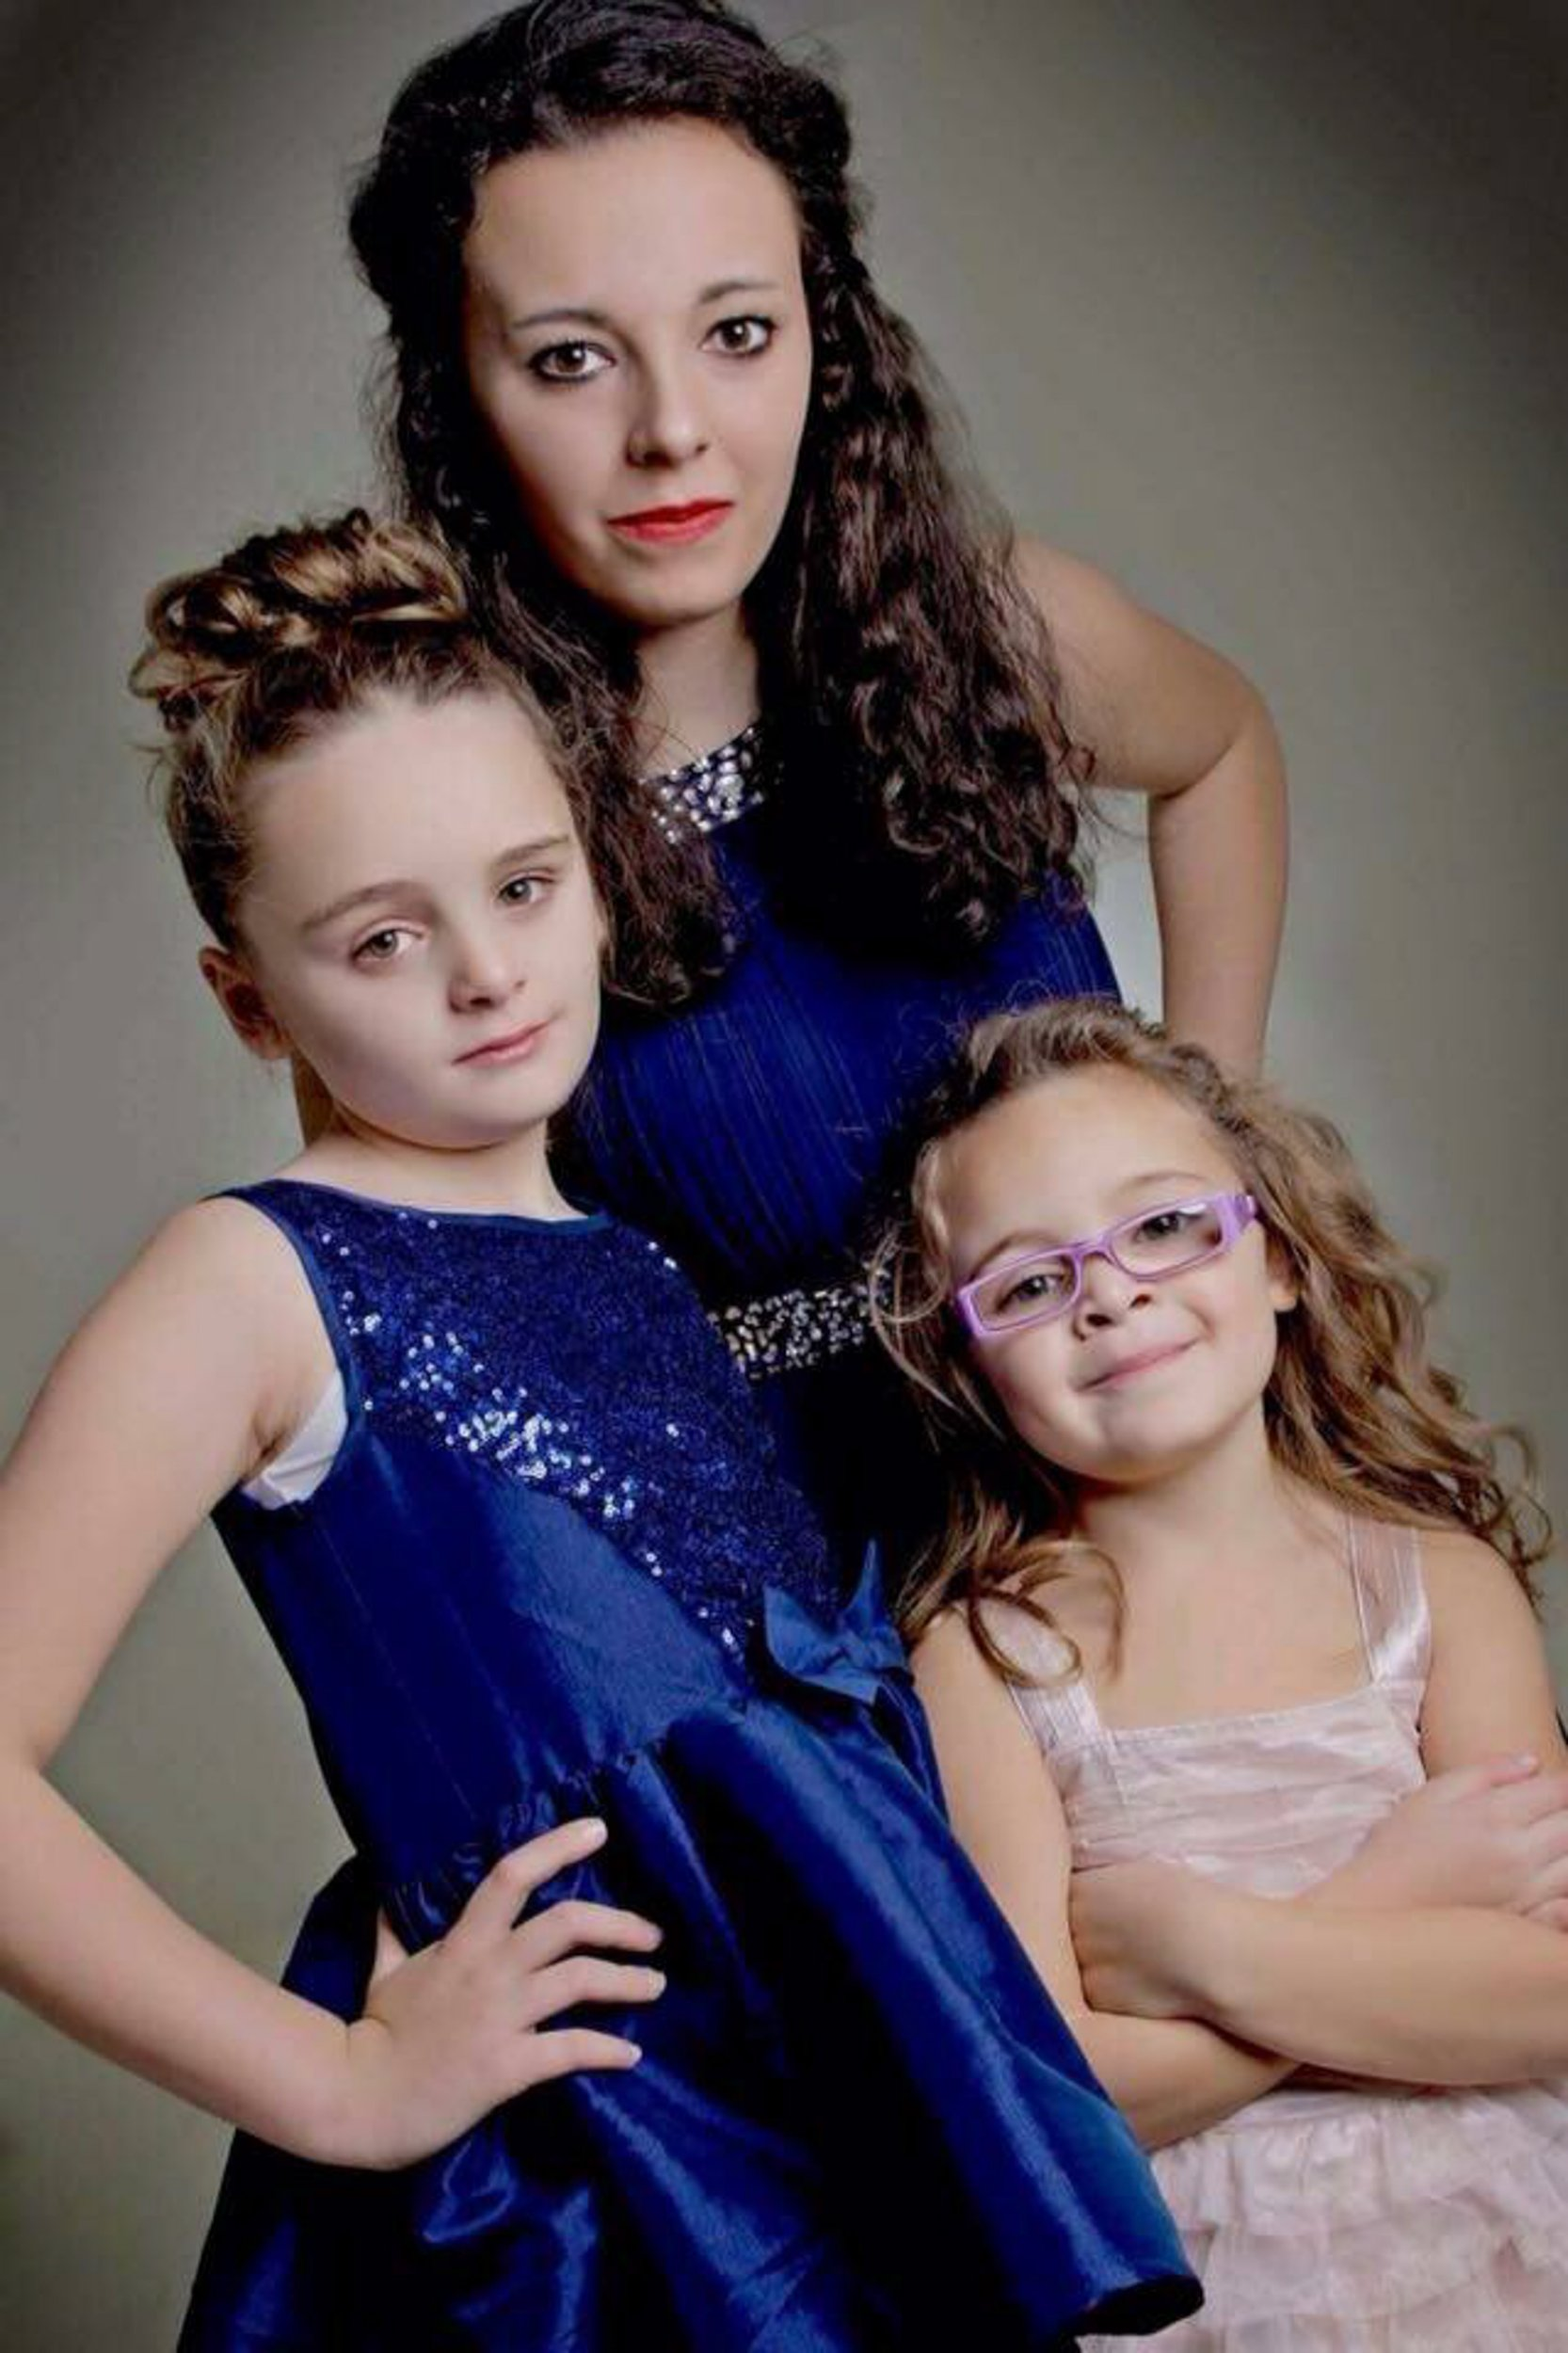 PIC FROM MERCURY PRESS (PICTURED: L-R MILLIE-GRACE ATKINSON, 12, MUM GILL TURNER, 47, AND FINTY ATKINSON) A mum has claims a fellow PARENT at her childís school sent her 12-year-old autistic daughter a string of RACIST and threatening messages after the two girls had a row on the way home. Gill Turner, 47, claims she was only alerted to the situation when her daughter Millie-Grace asked if it was ëever OK for a man to call someone a n****r?í. Immediately concerned, the mum-of-three took her daughter's phone and discovered a series of texts sent by Dean Sheridan ñ containing racist abuse and threats of violence. SEE MERCURY COPY